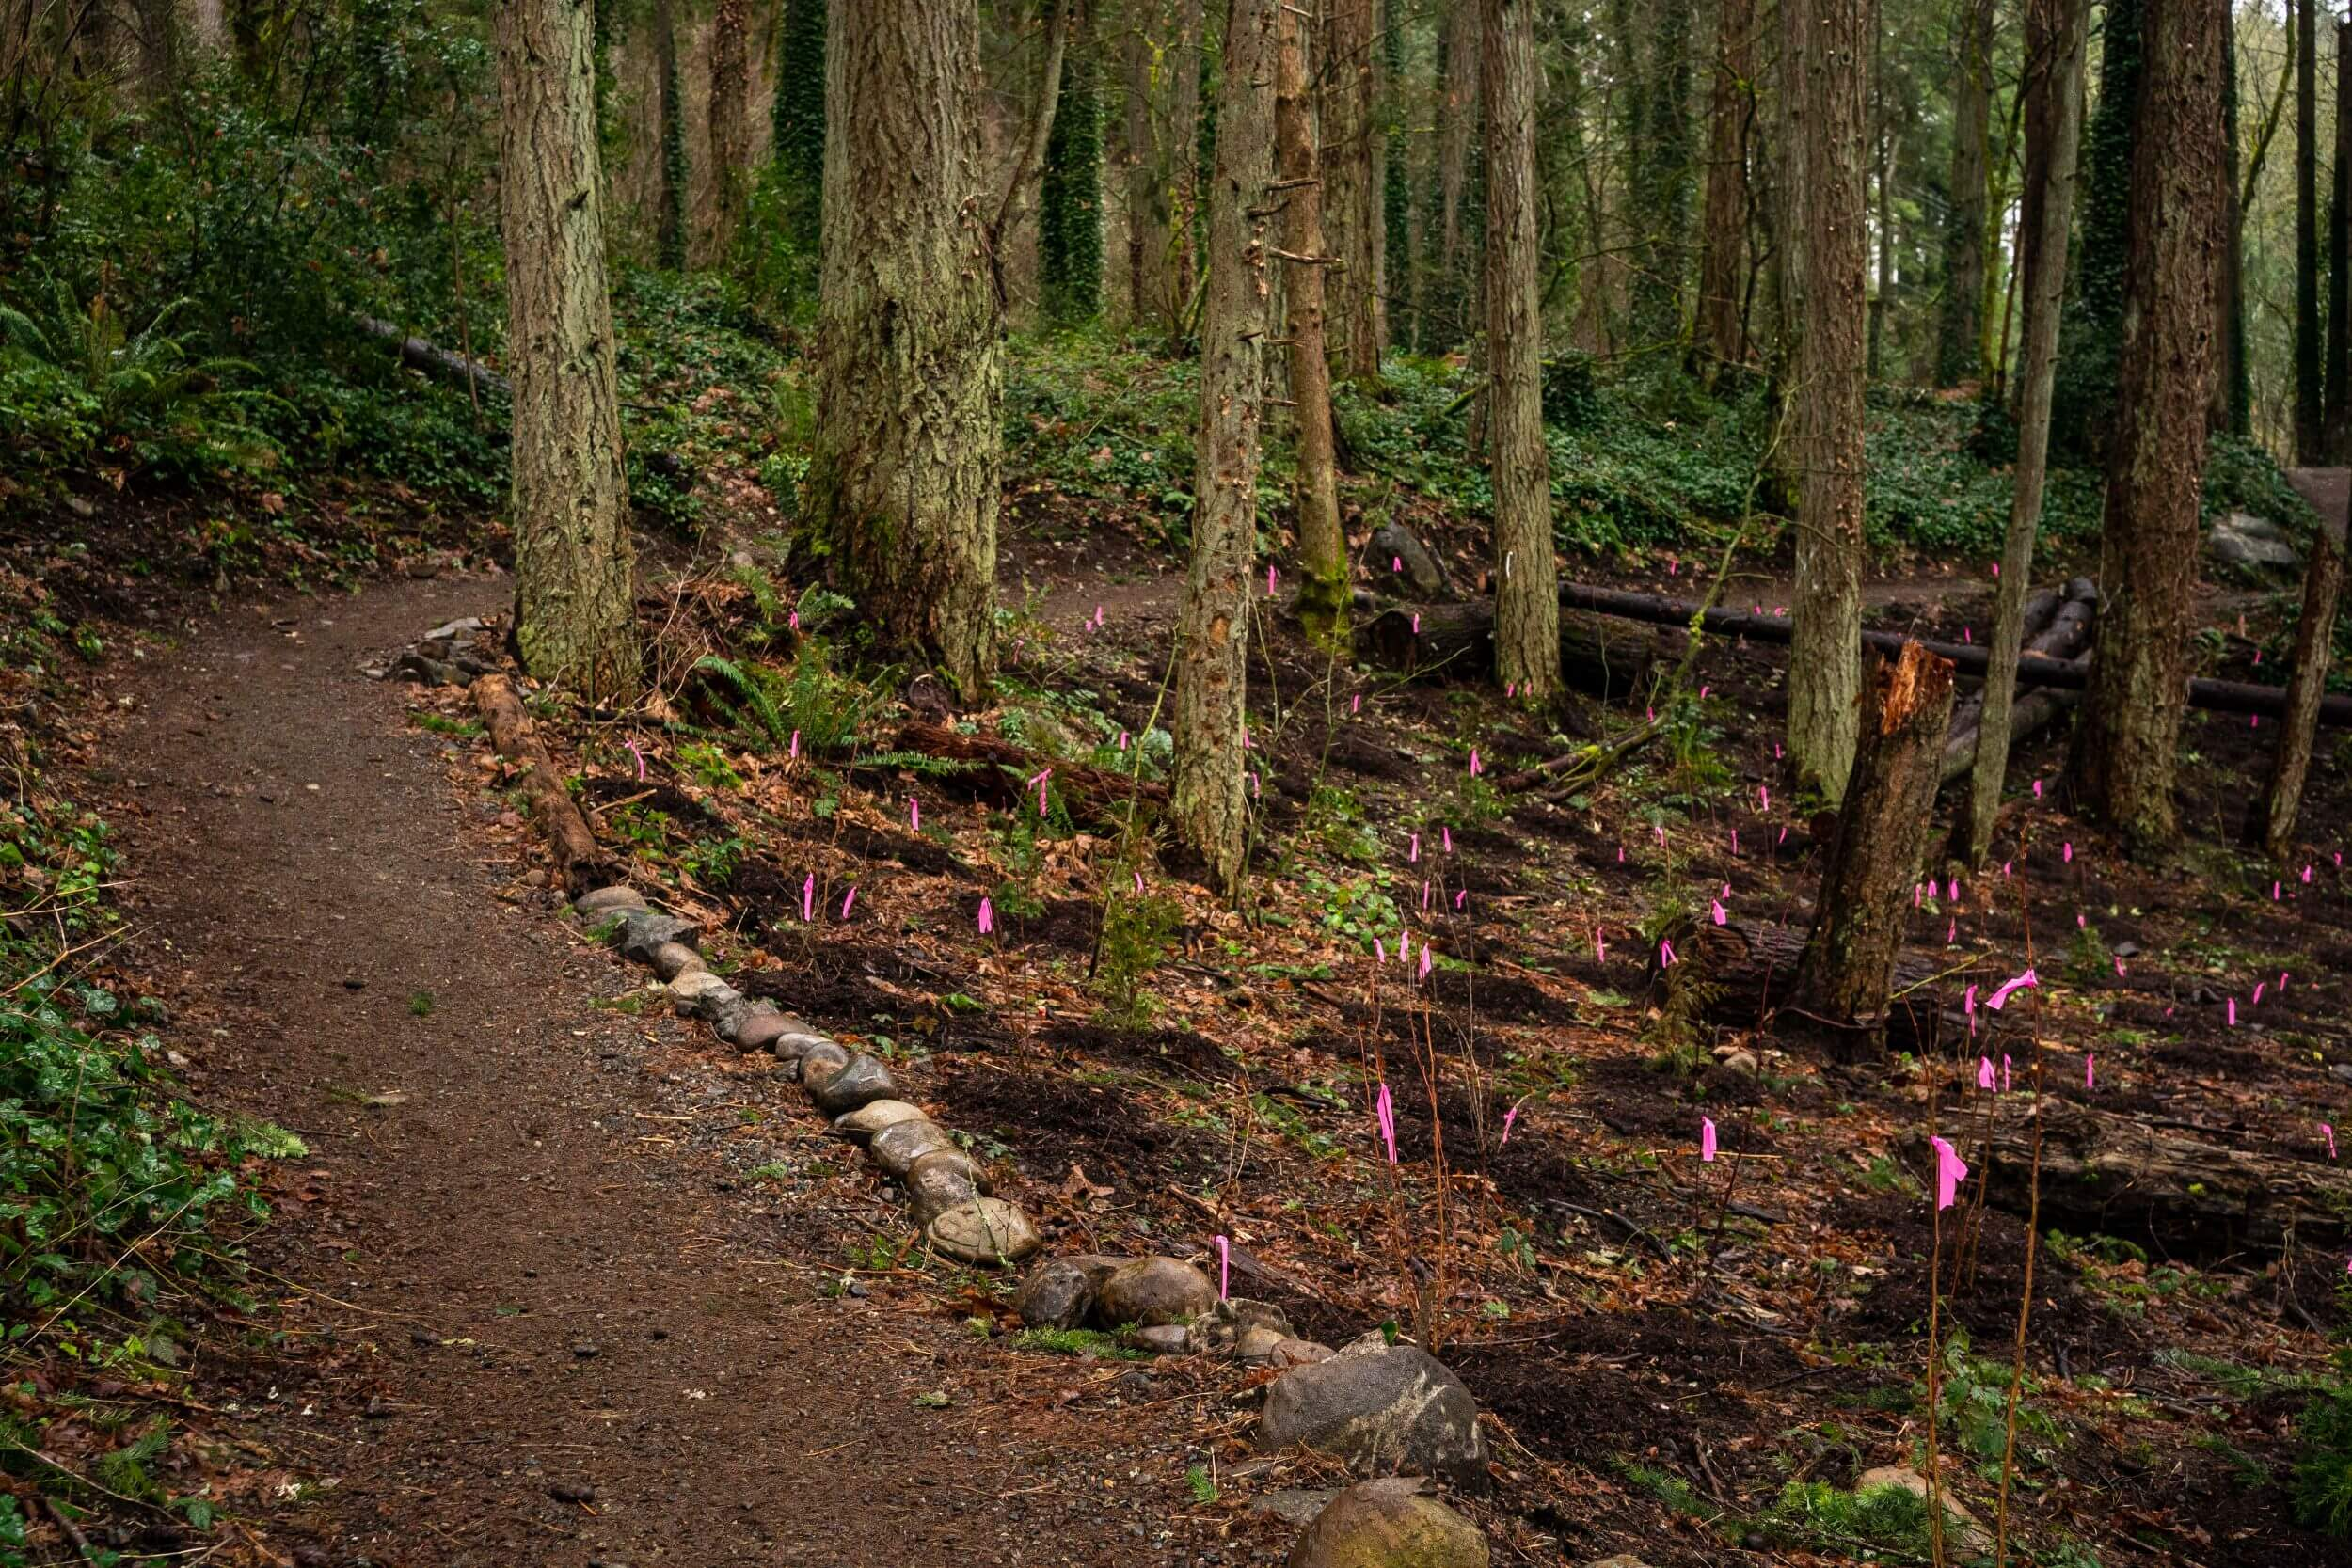 A forest, and in the middle of the photo, a scattering of tiny neon pink flags marking recently dug-up piles of dirt.